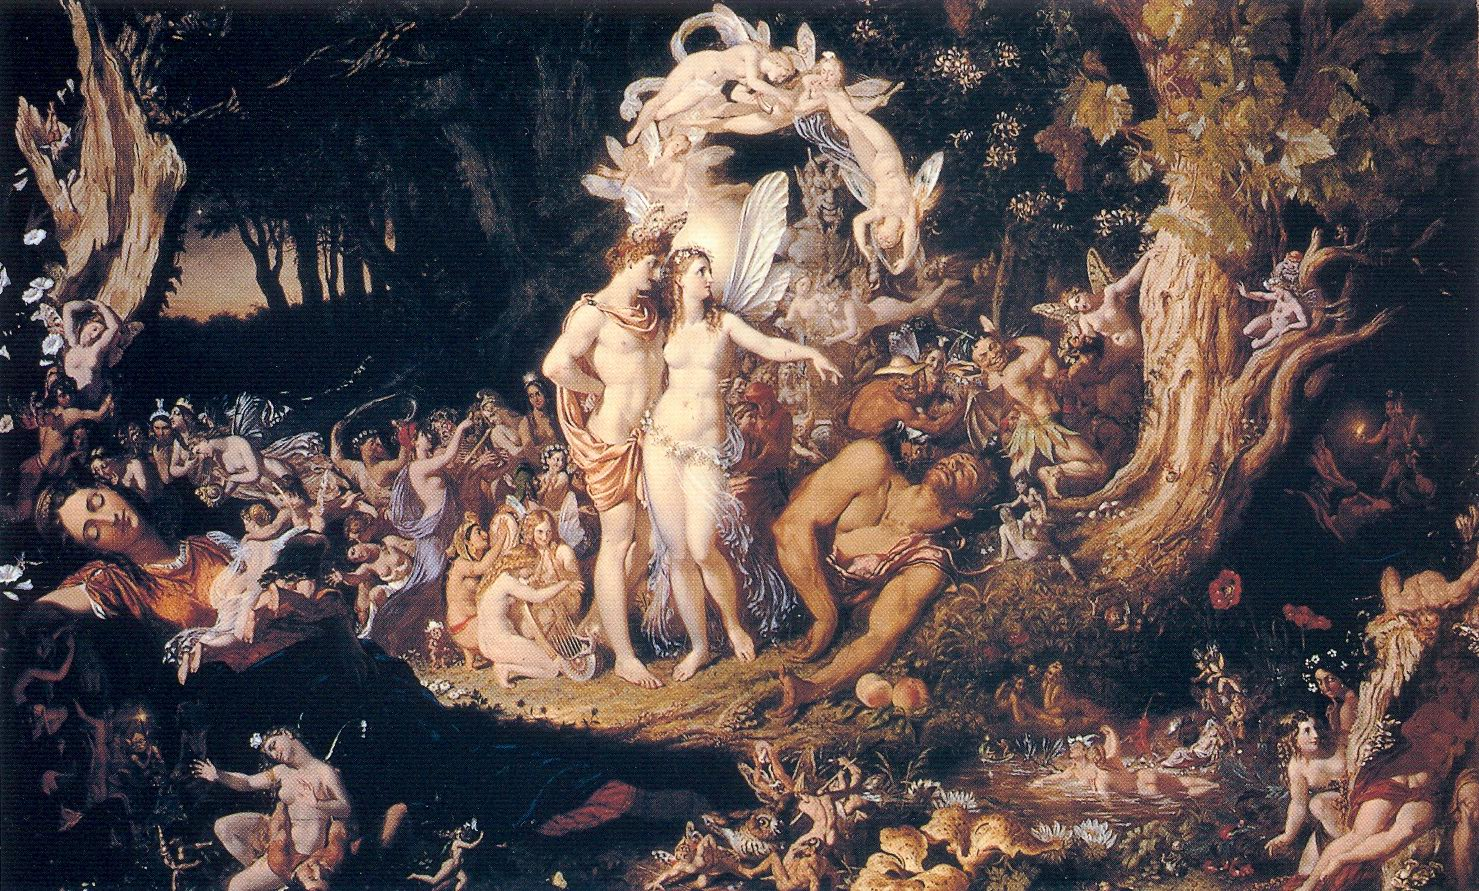 a literary analysis of the characters oberon and titania in the play by william shakespeare